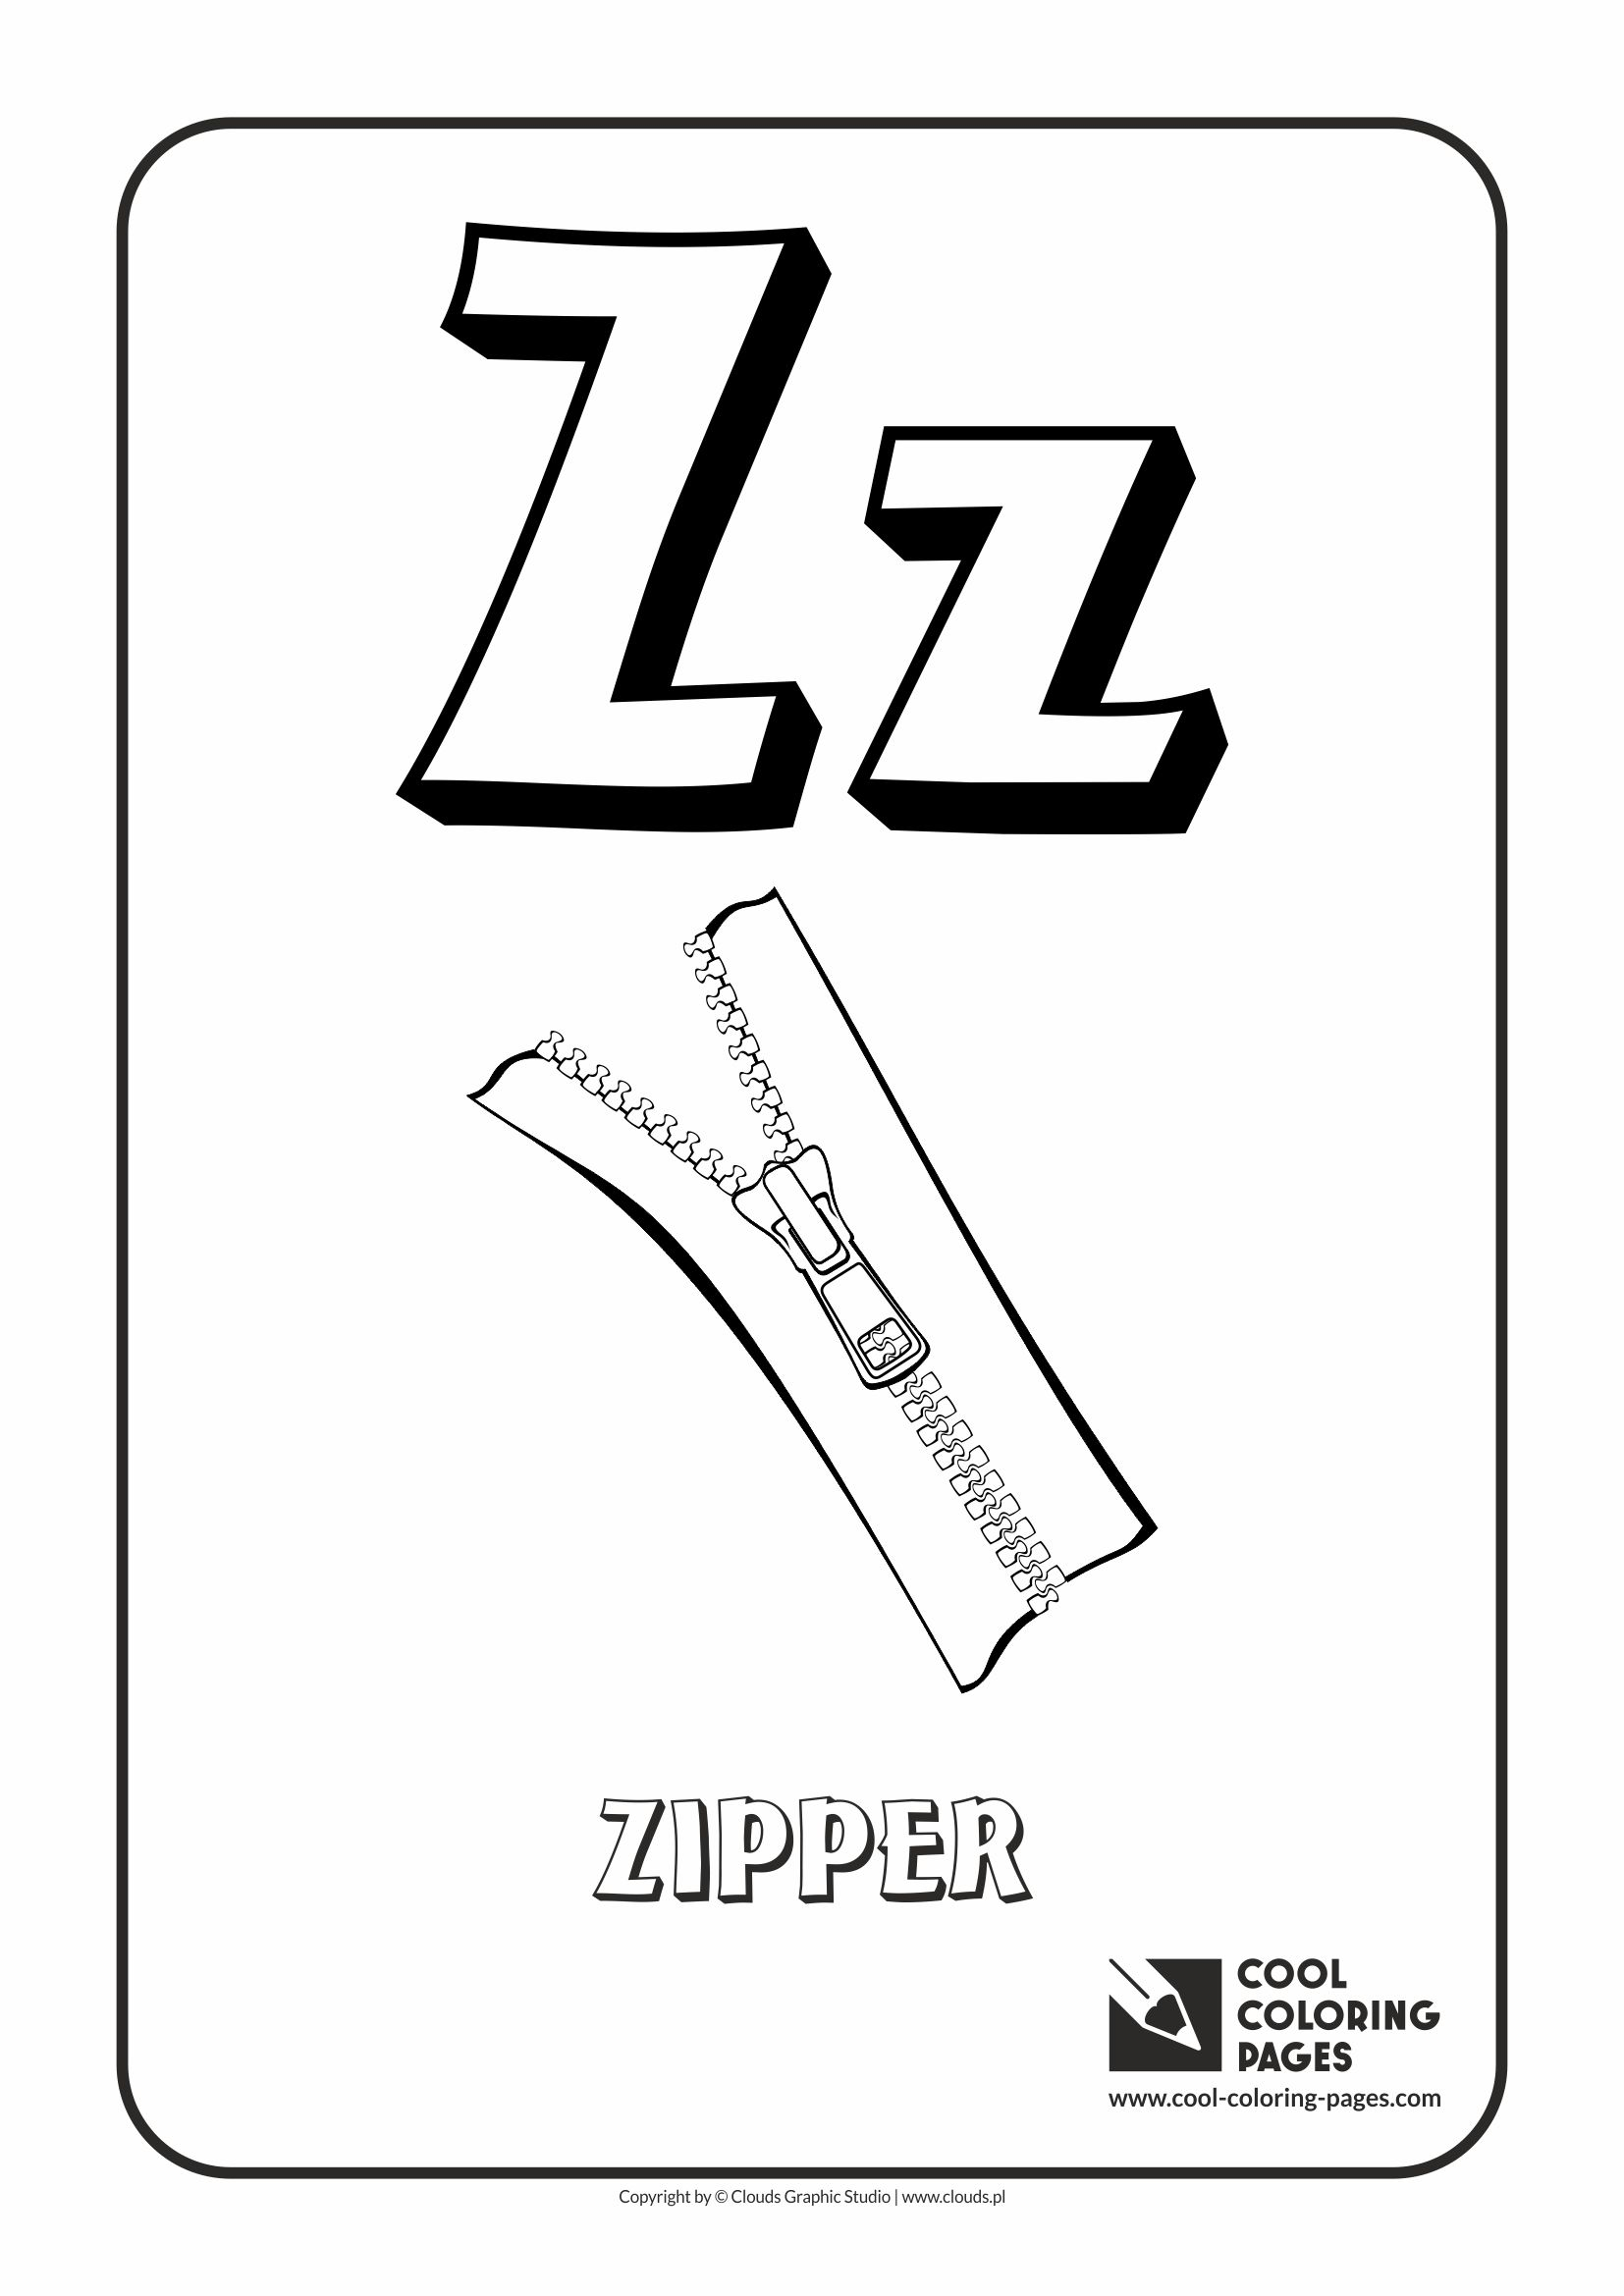 Cool Coloring Pages Letter Z Coloring Alphabet Cool